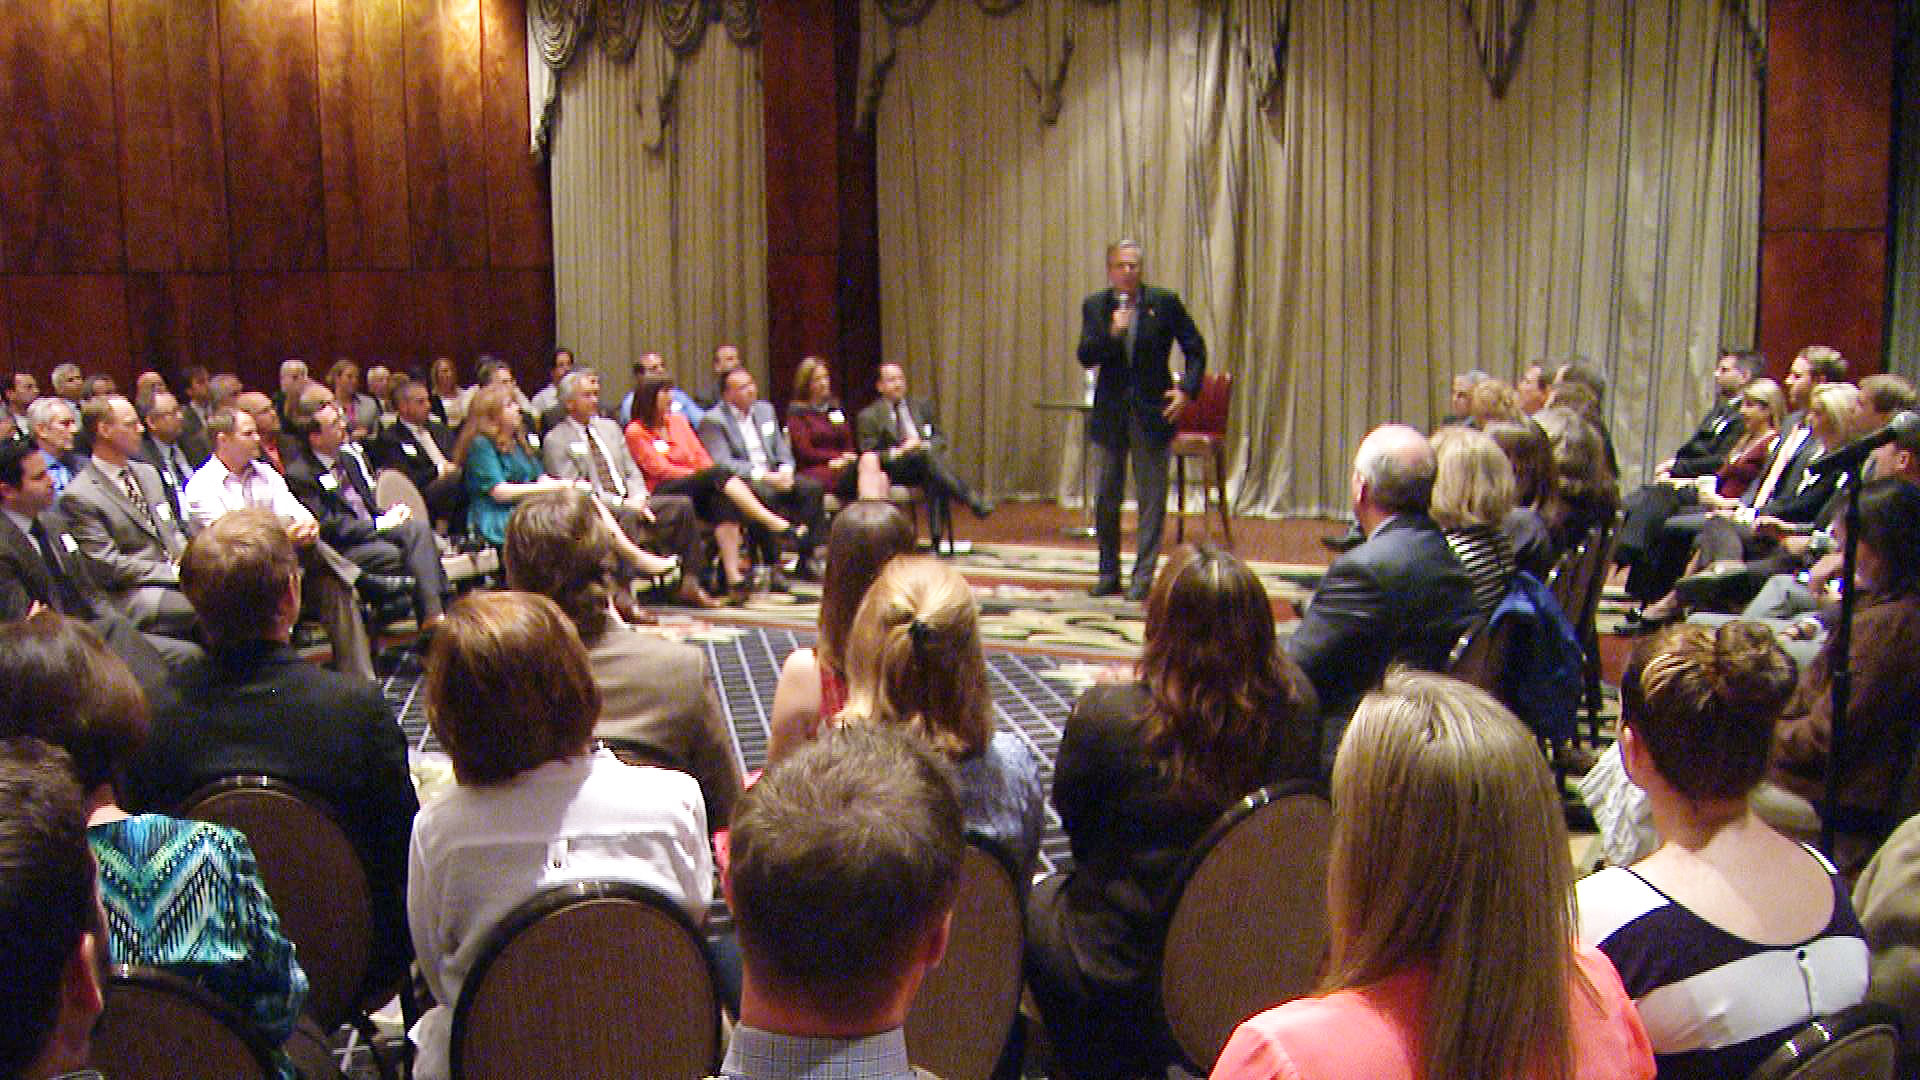 Jeb Bush at the event in Denver on Tuesday (credit: CBS)